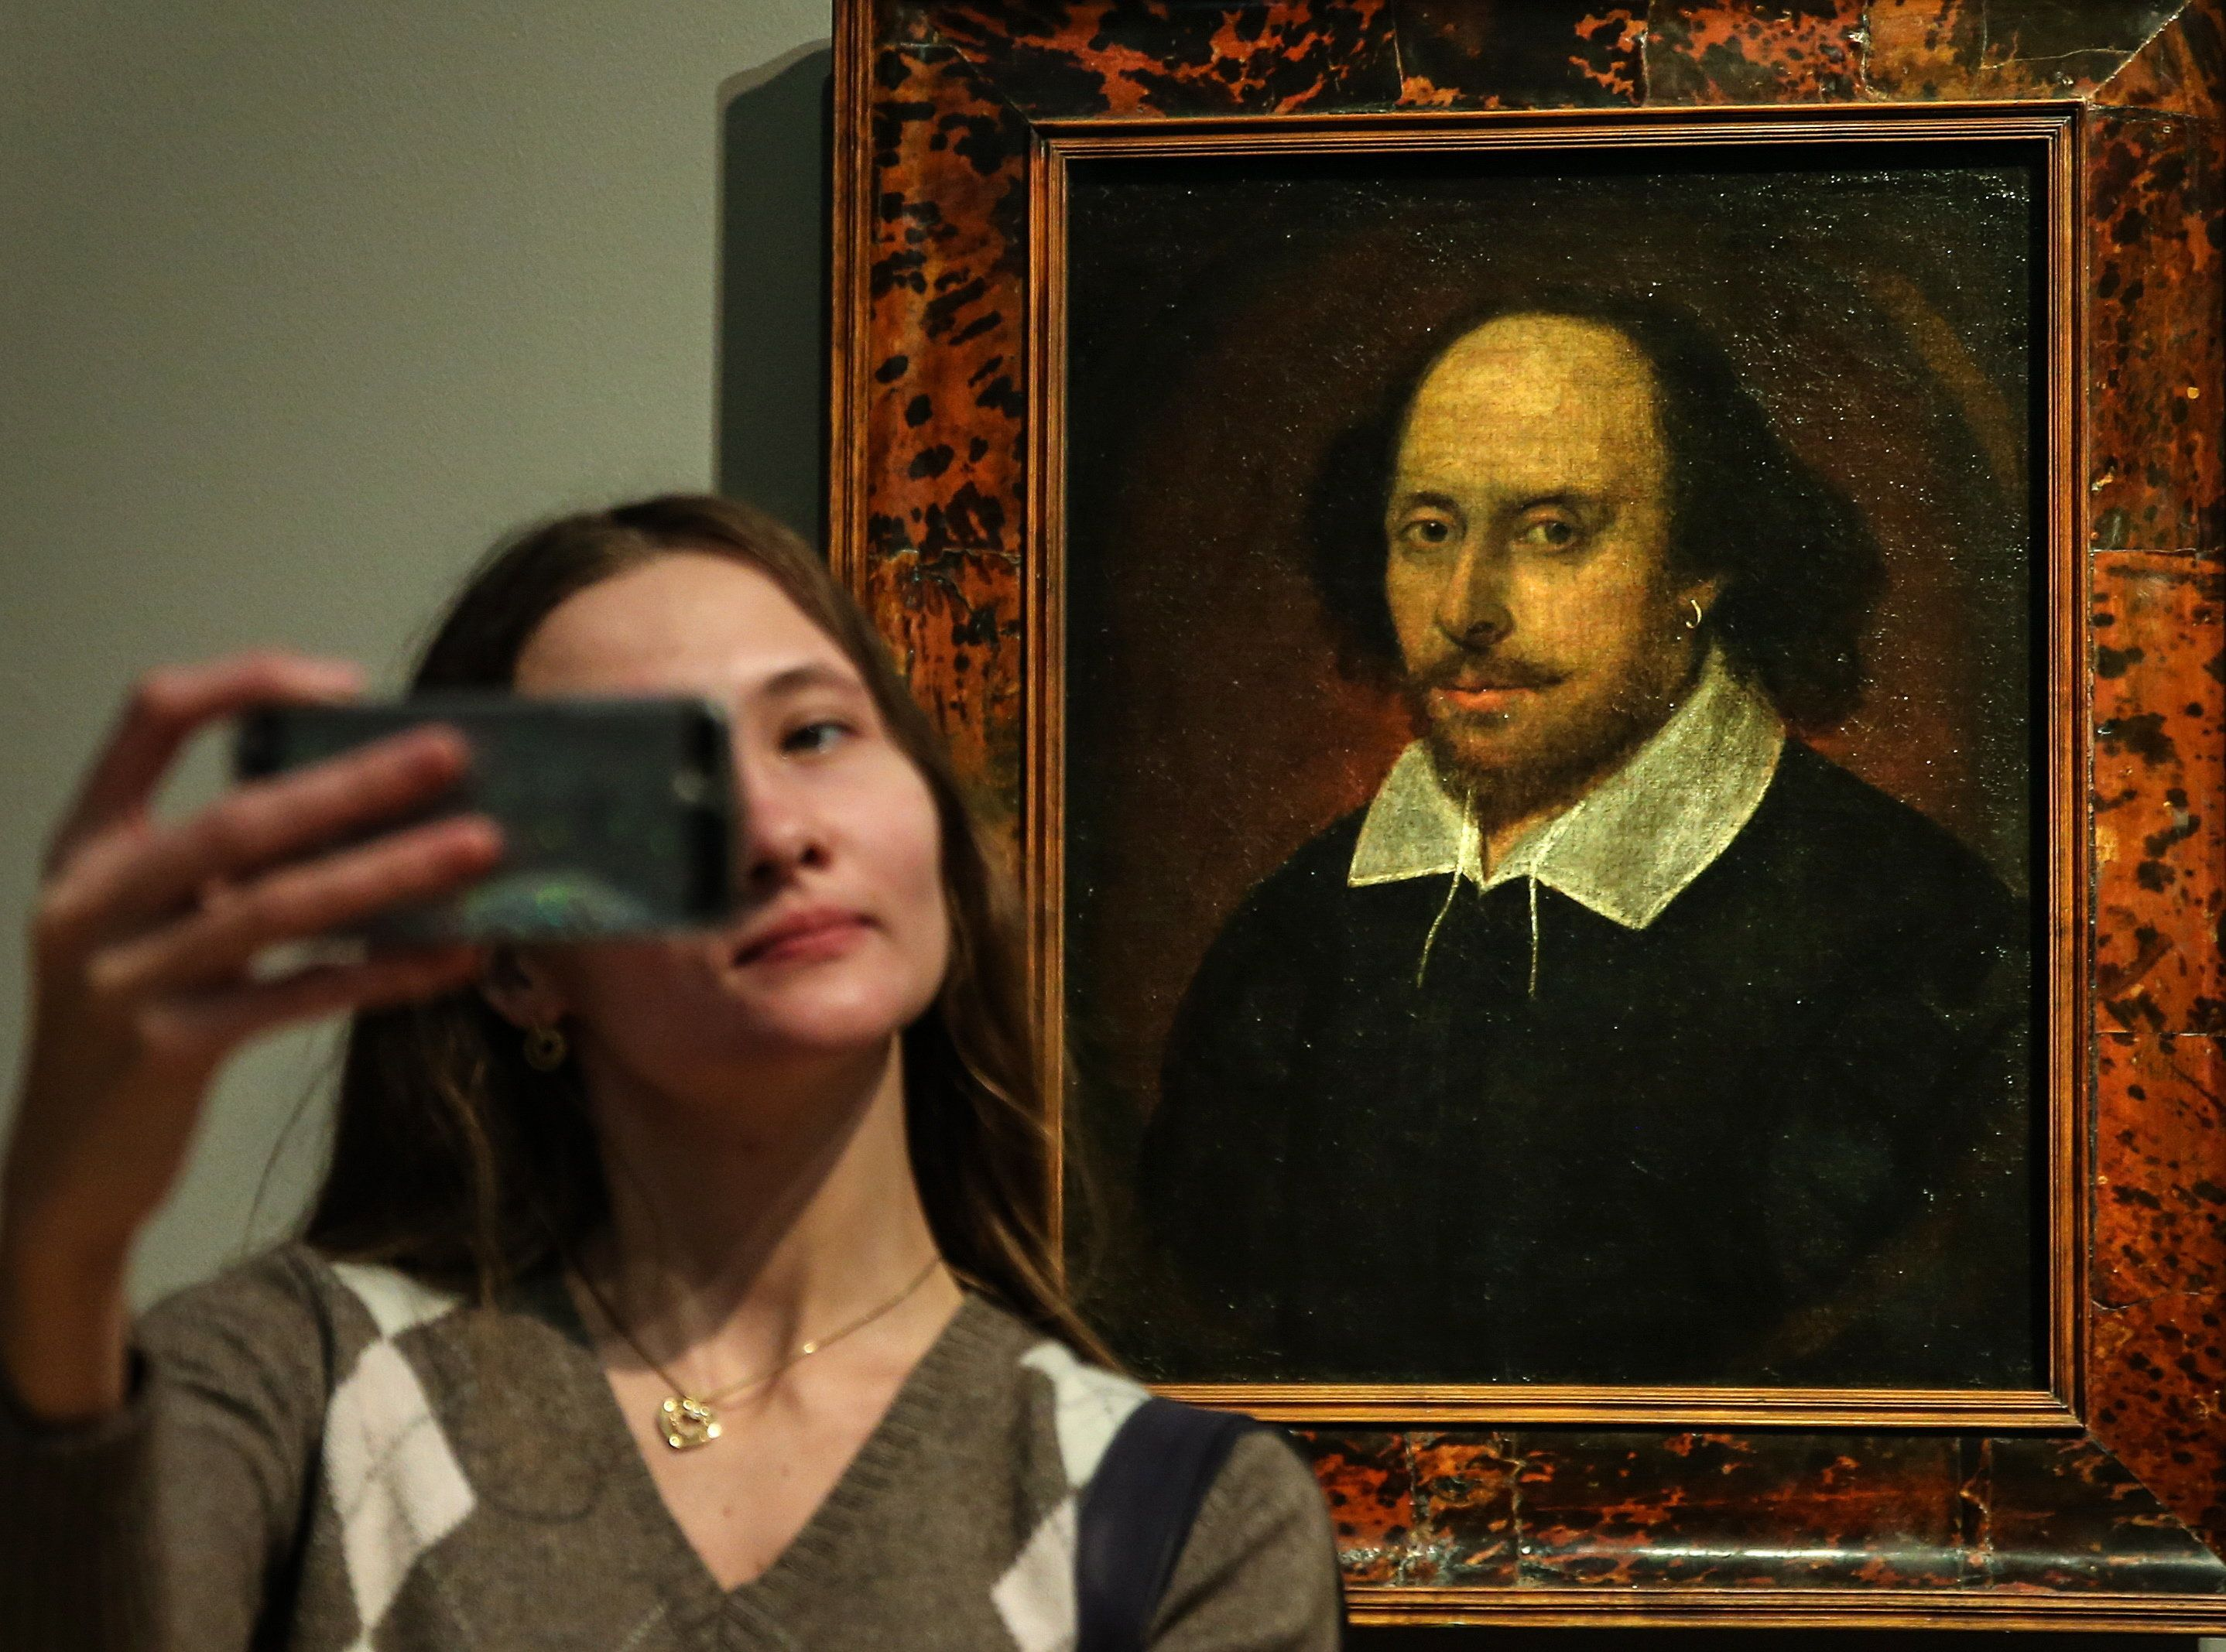 MOSCOW, RUSSIA. APRIL 21, 2016. Portrait of William Shakespeare by English artist John Taylor on display at an exhibition titled 'From Elizabeth to Victoria. English portrait from the collection of the National Portrait Gallery, London' at the State Tretyakov Gallery. The exhibition is opened as part of the UK-Russia Year of Language and Literature. Valery Sharifulin/TASS (Photo by Valery Sharifulin\TASS via Getty Images)